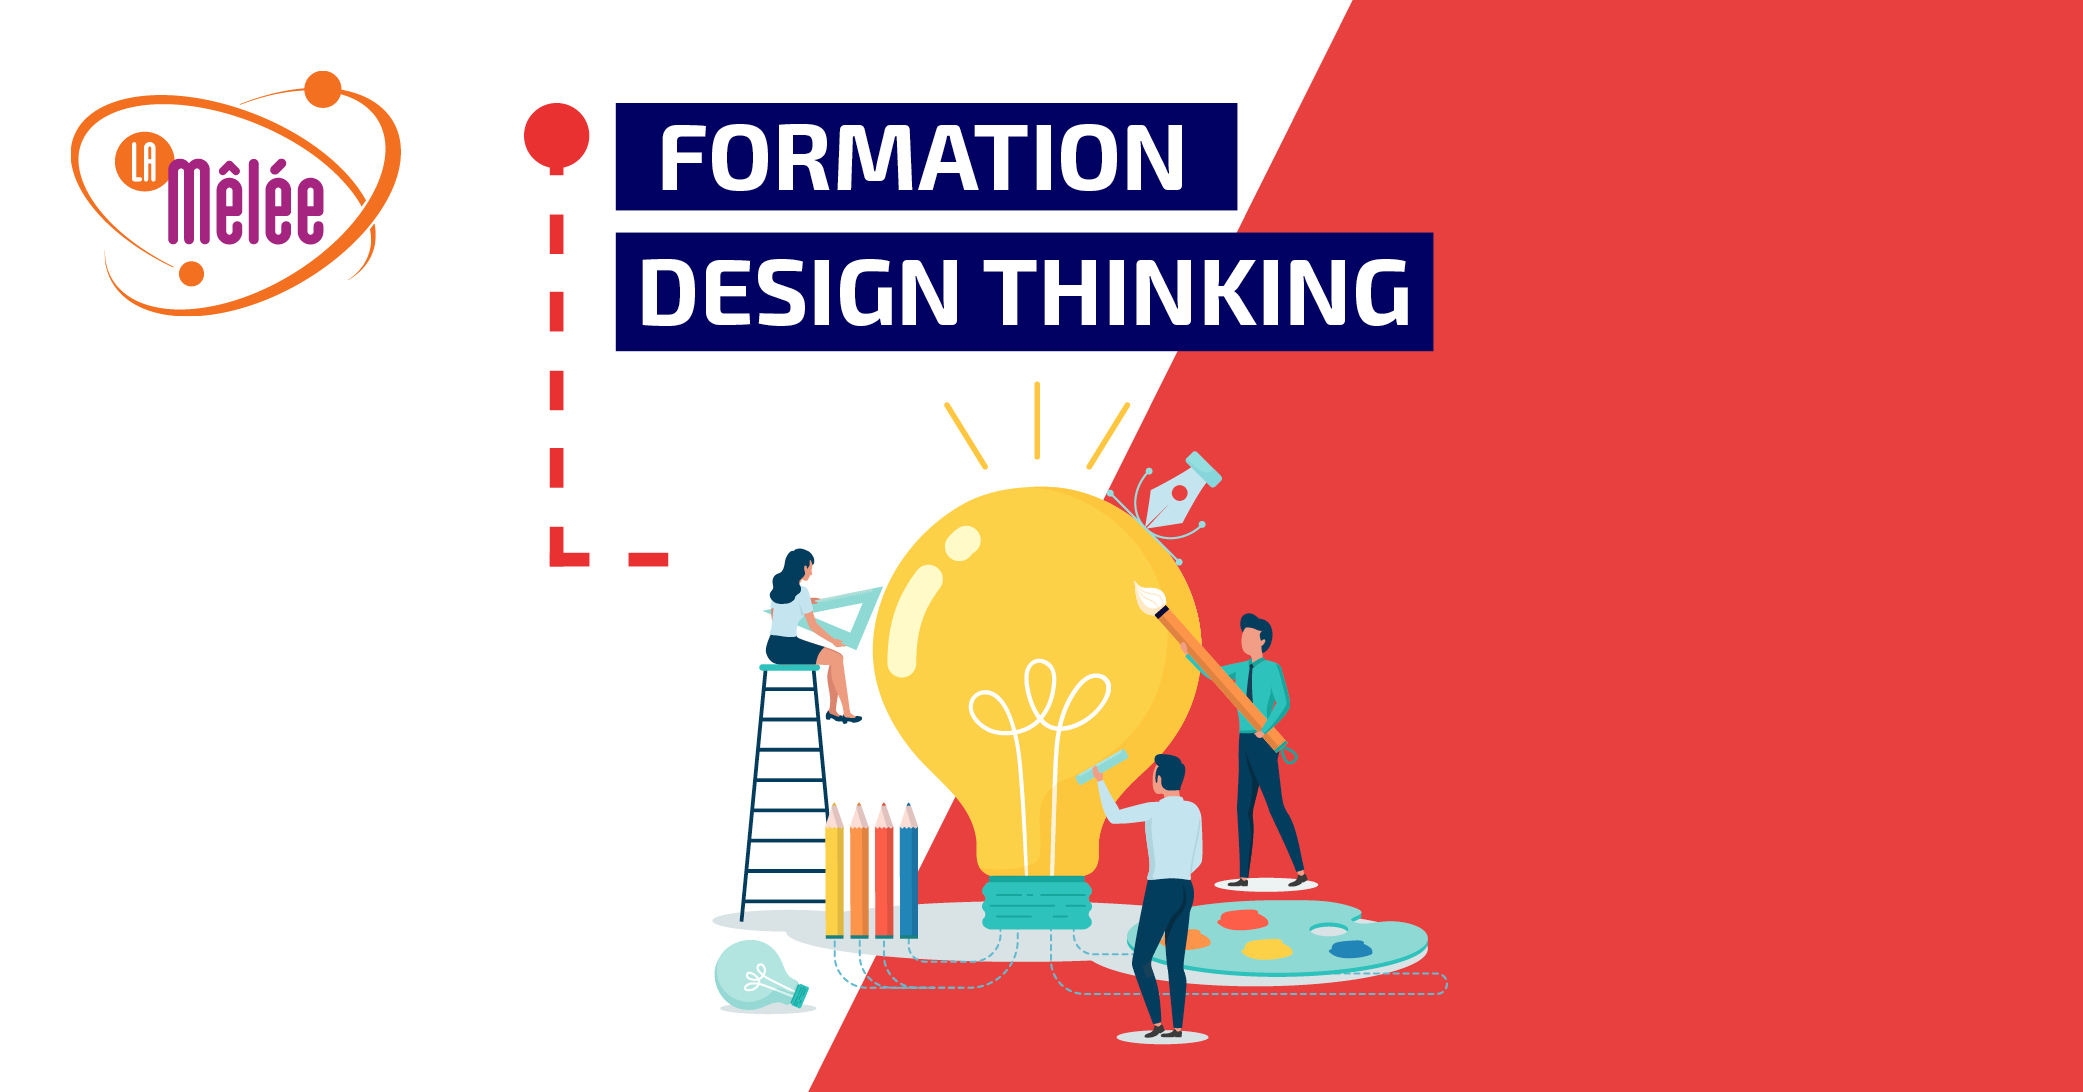 Formation : Design Thinking